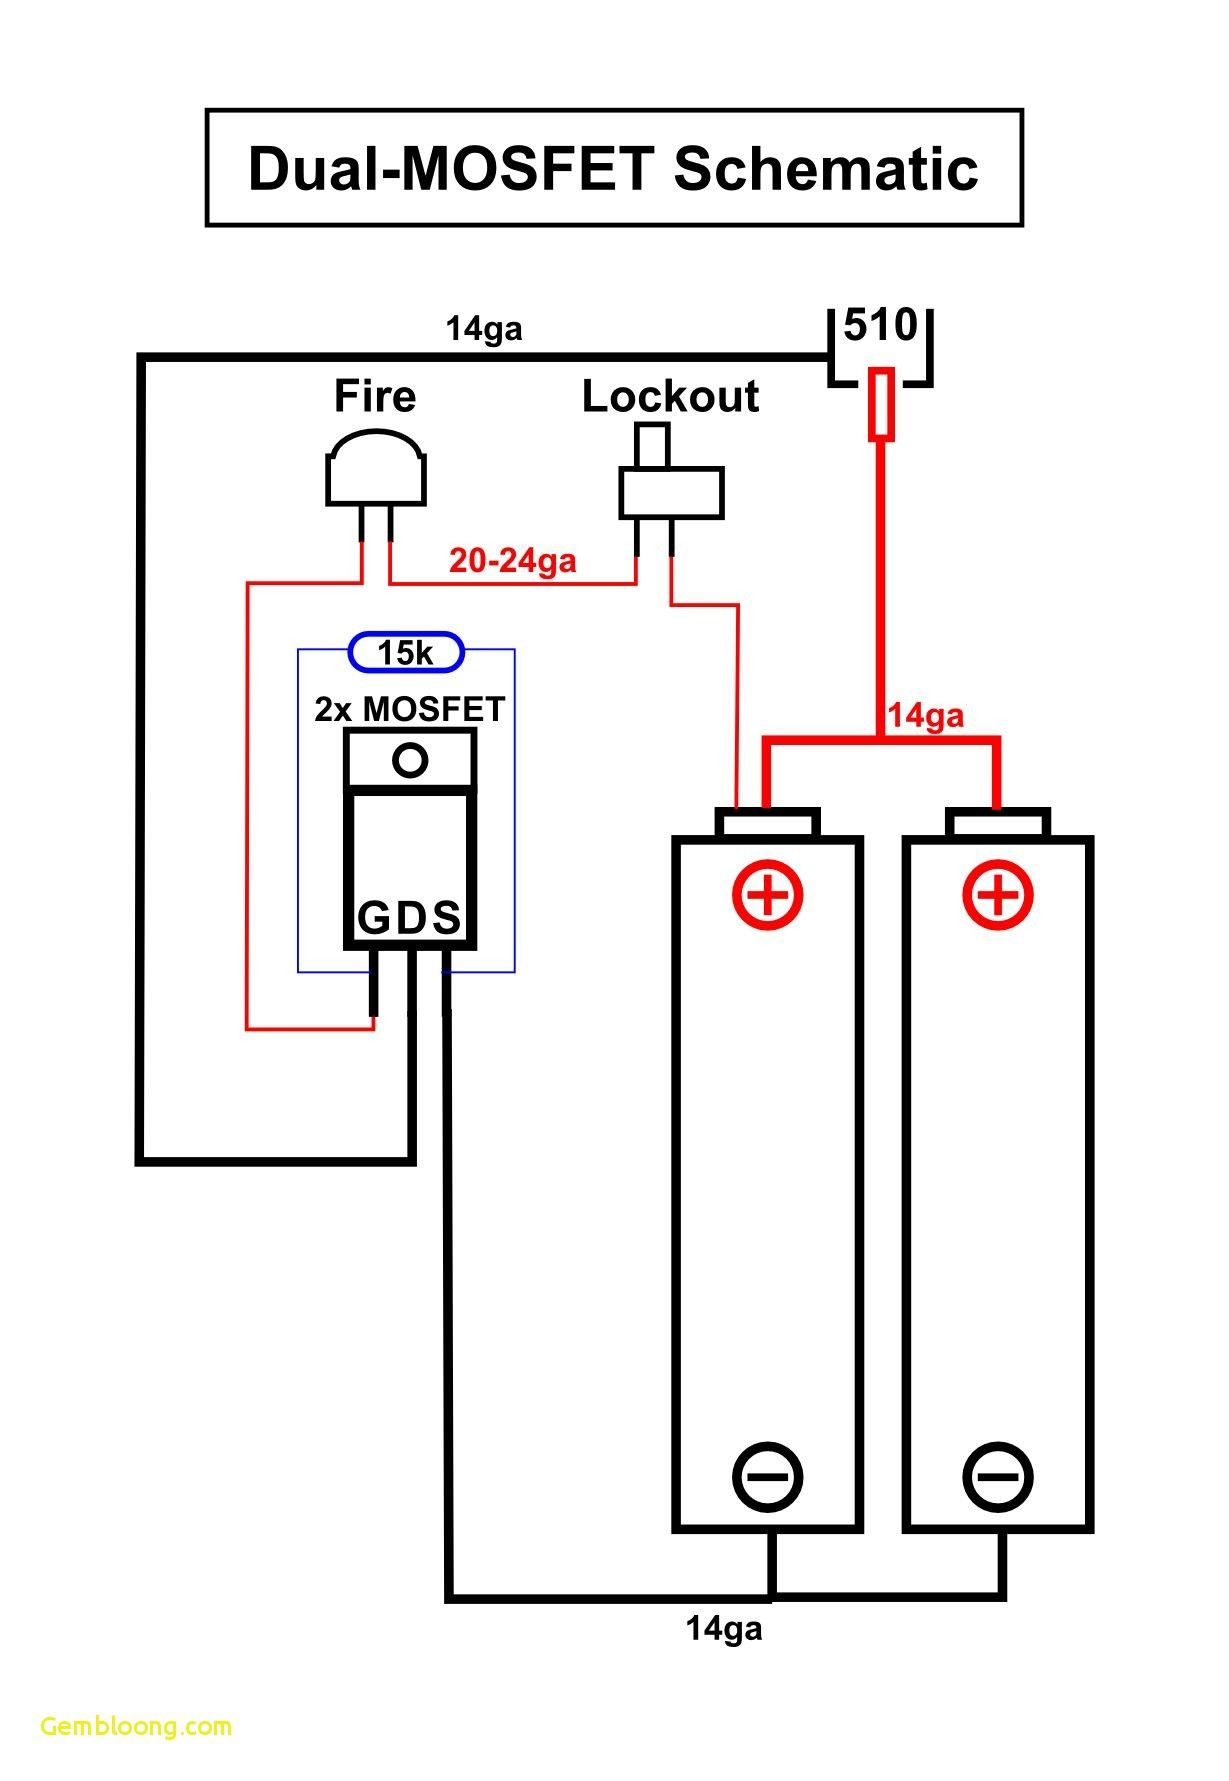 hight resolution of awesome wiring diagram potentiometer diagrams digramssample awesome wiring diagram potentiometer diagrams digramssample diagramimages wiringdiagramsample